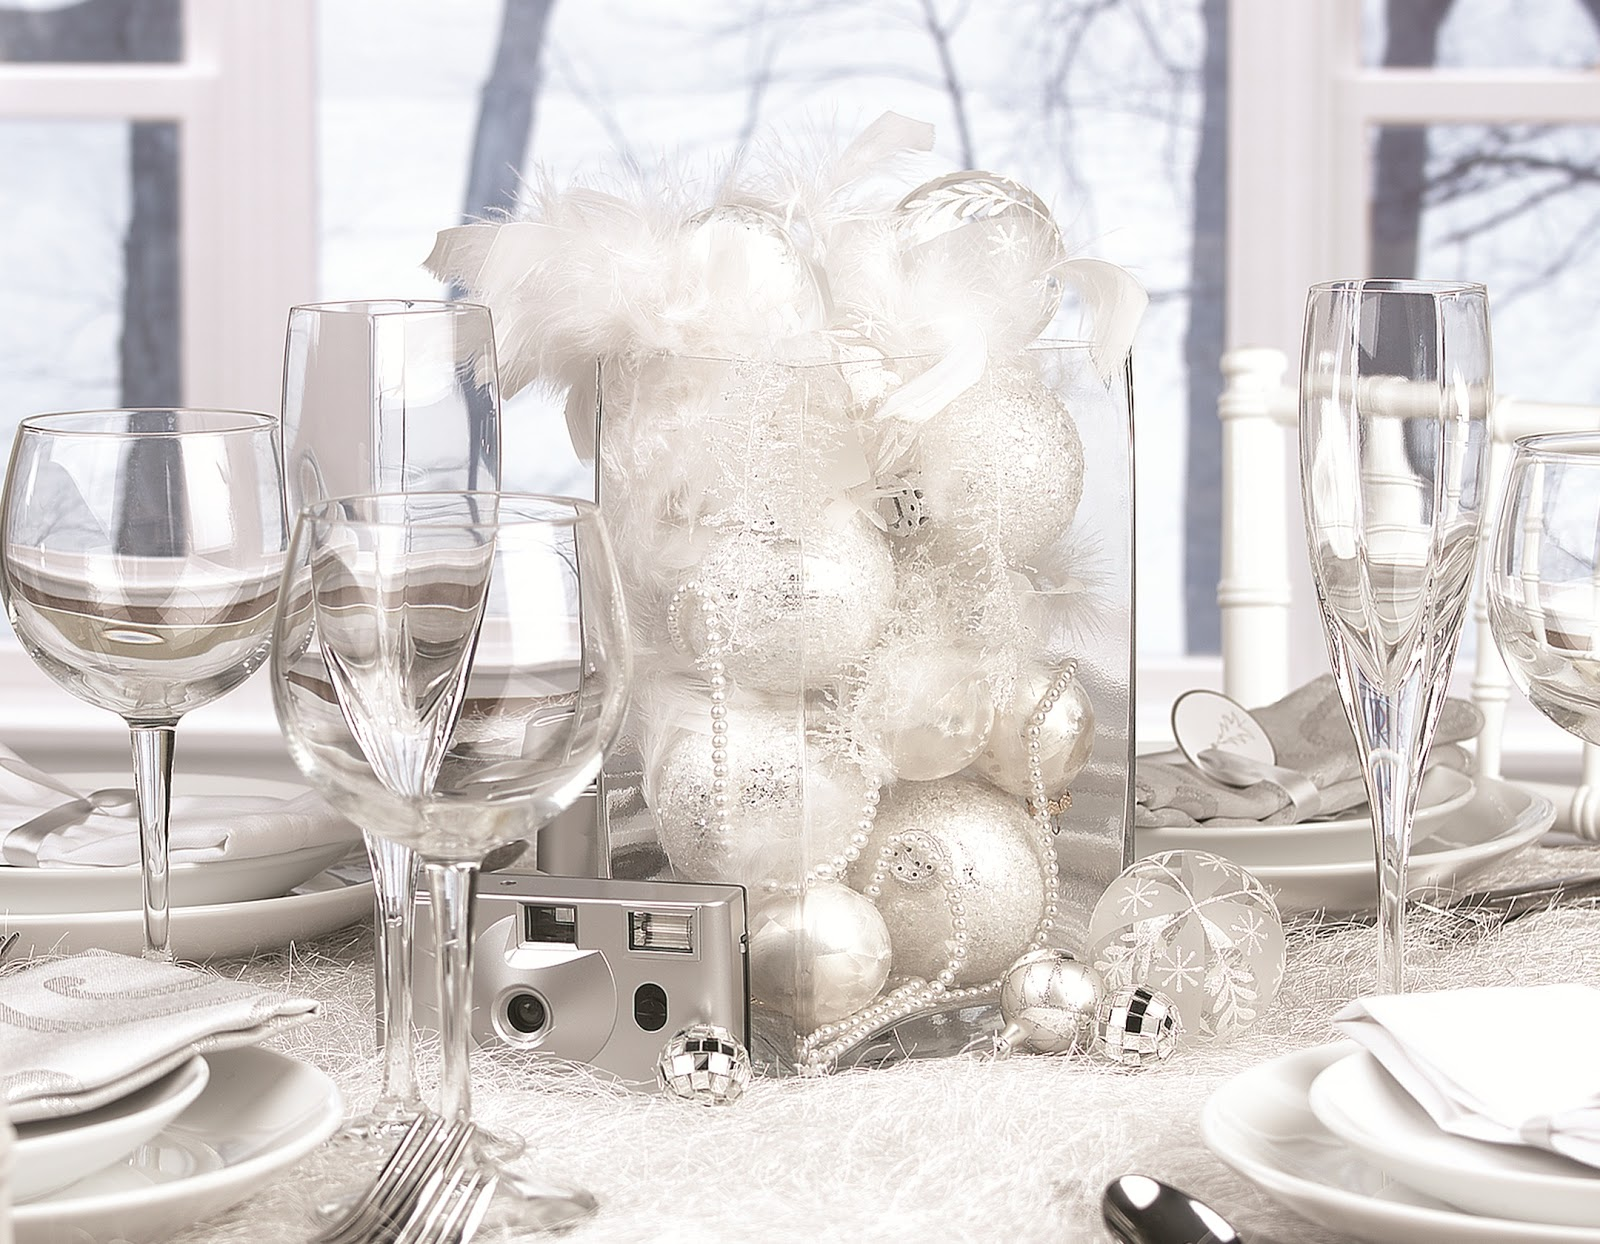 Warm up to winter white winter white wonderland holdiay for White xmas decorations